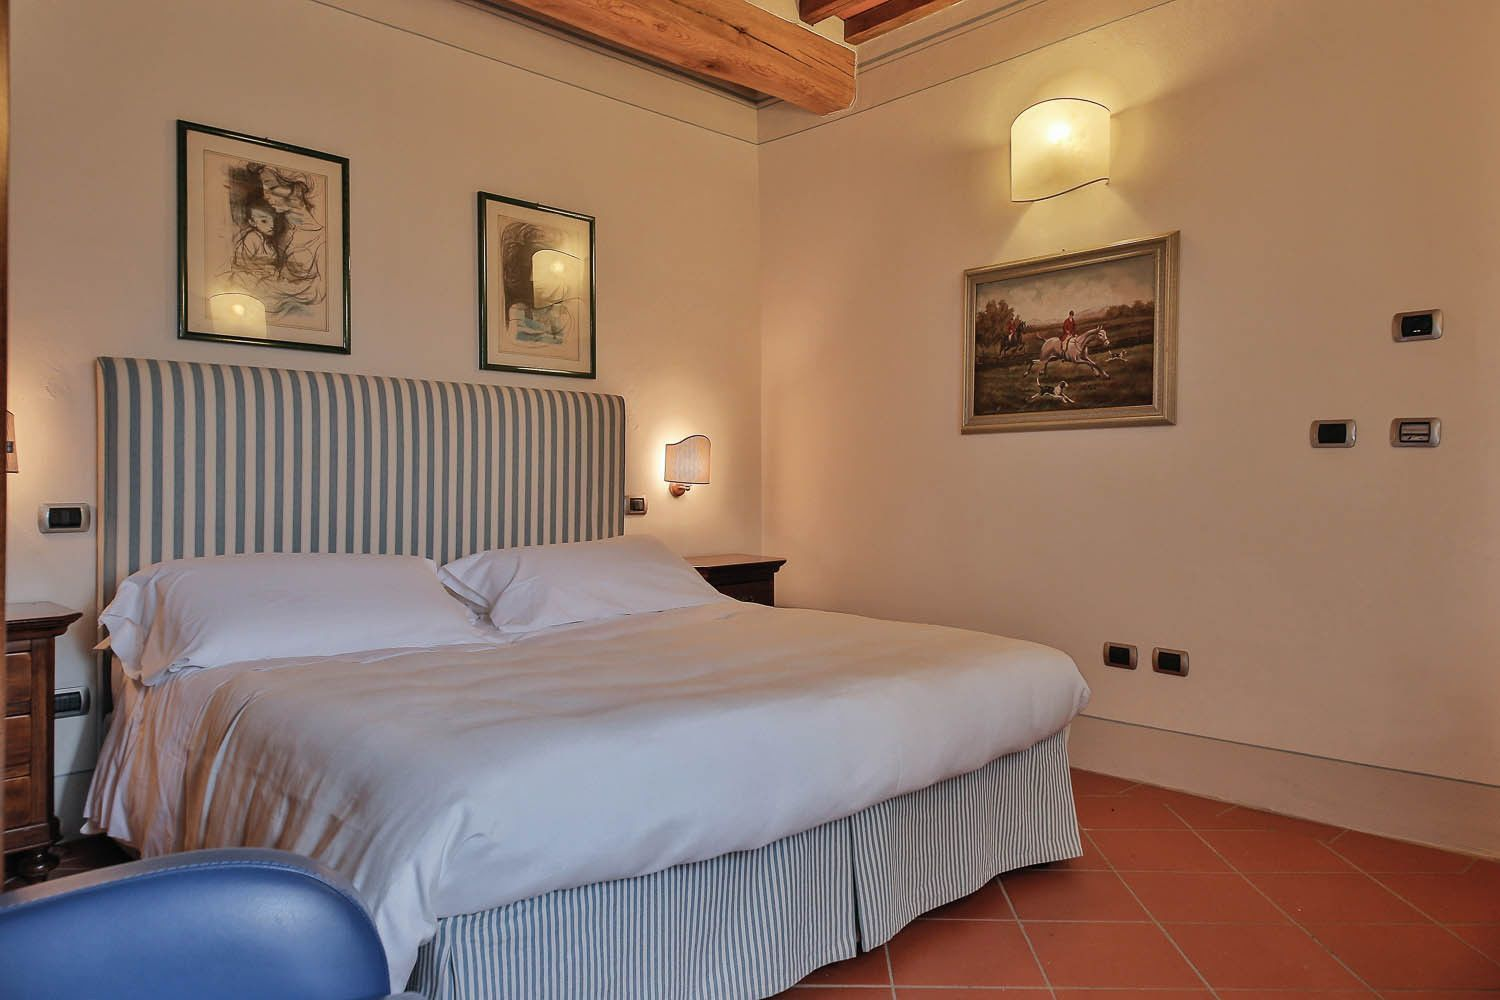 vacation rental villa la martina that sleeps 22 people in 9 bedrooms